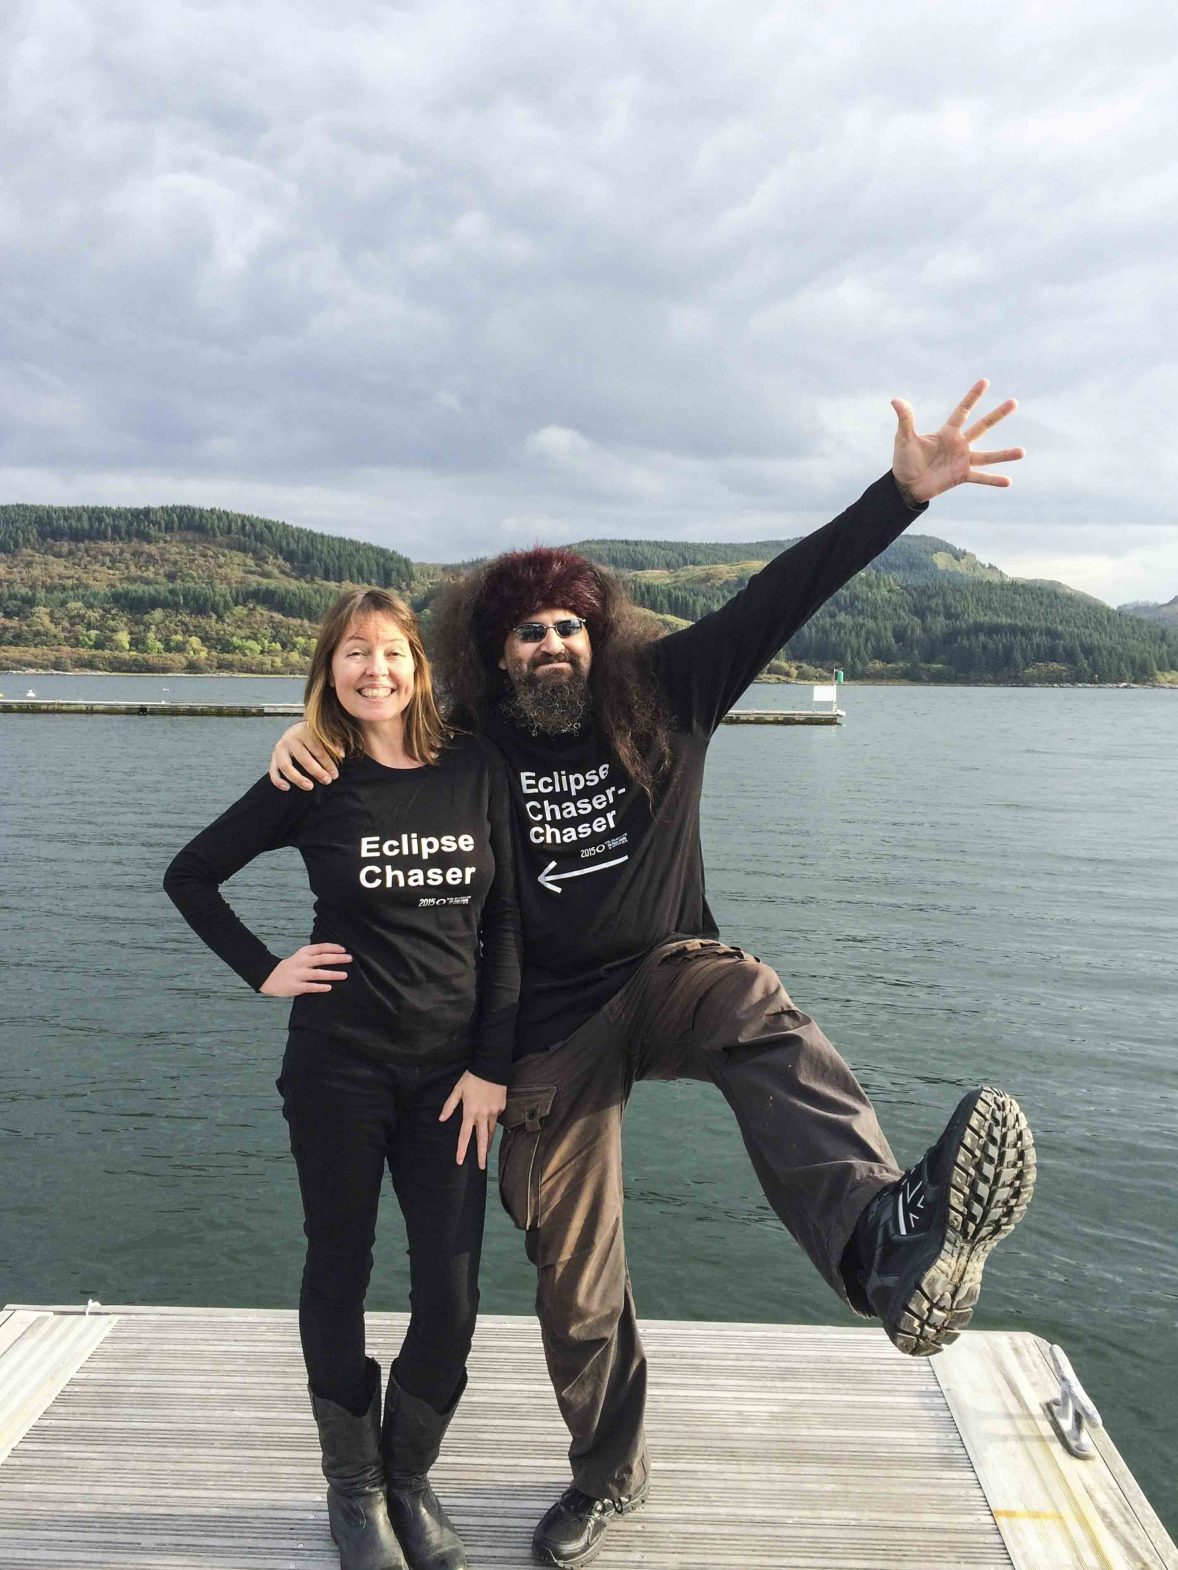 Meet eclipse chaser Dr. Kate Russo and her partner.